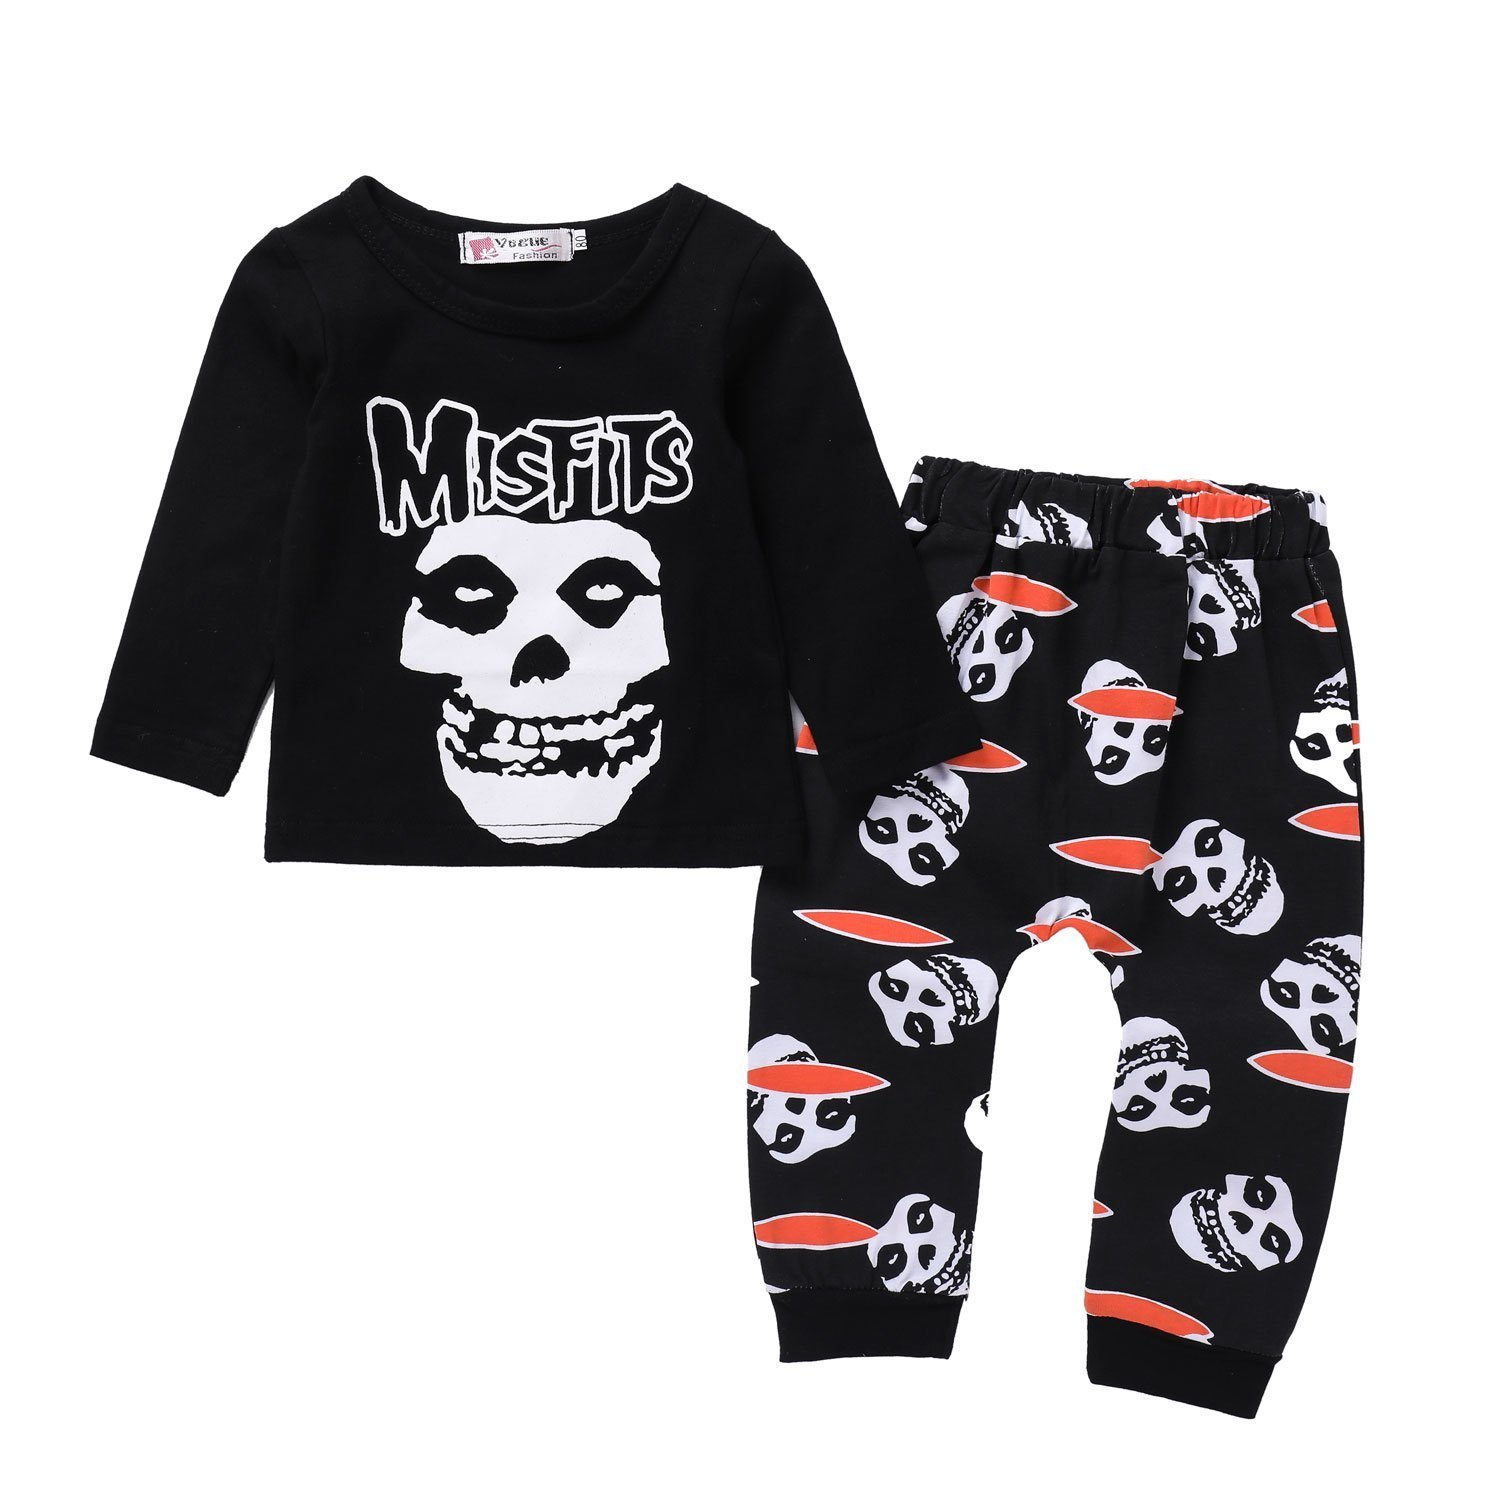 Xmas gift Toddler Baby Boys Girls Halloween Clothes Kid Newborn Long Sleeve Skull Bone Print T-Shirt Tops Pants Outfit Set (Toddler Baby Boys Girls Halloween Clothes, 120(3-4Y))